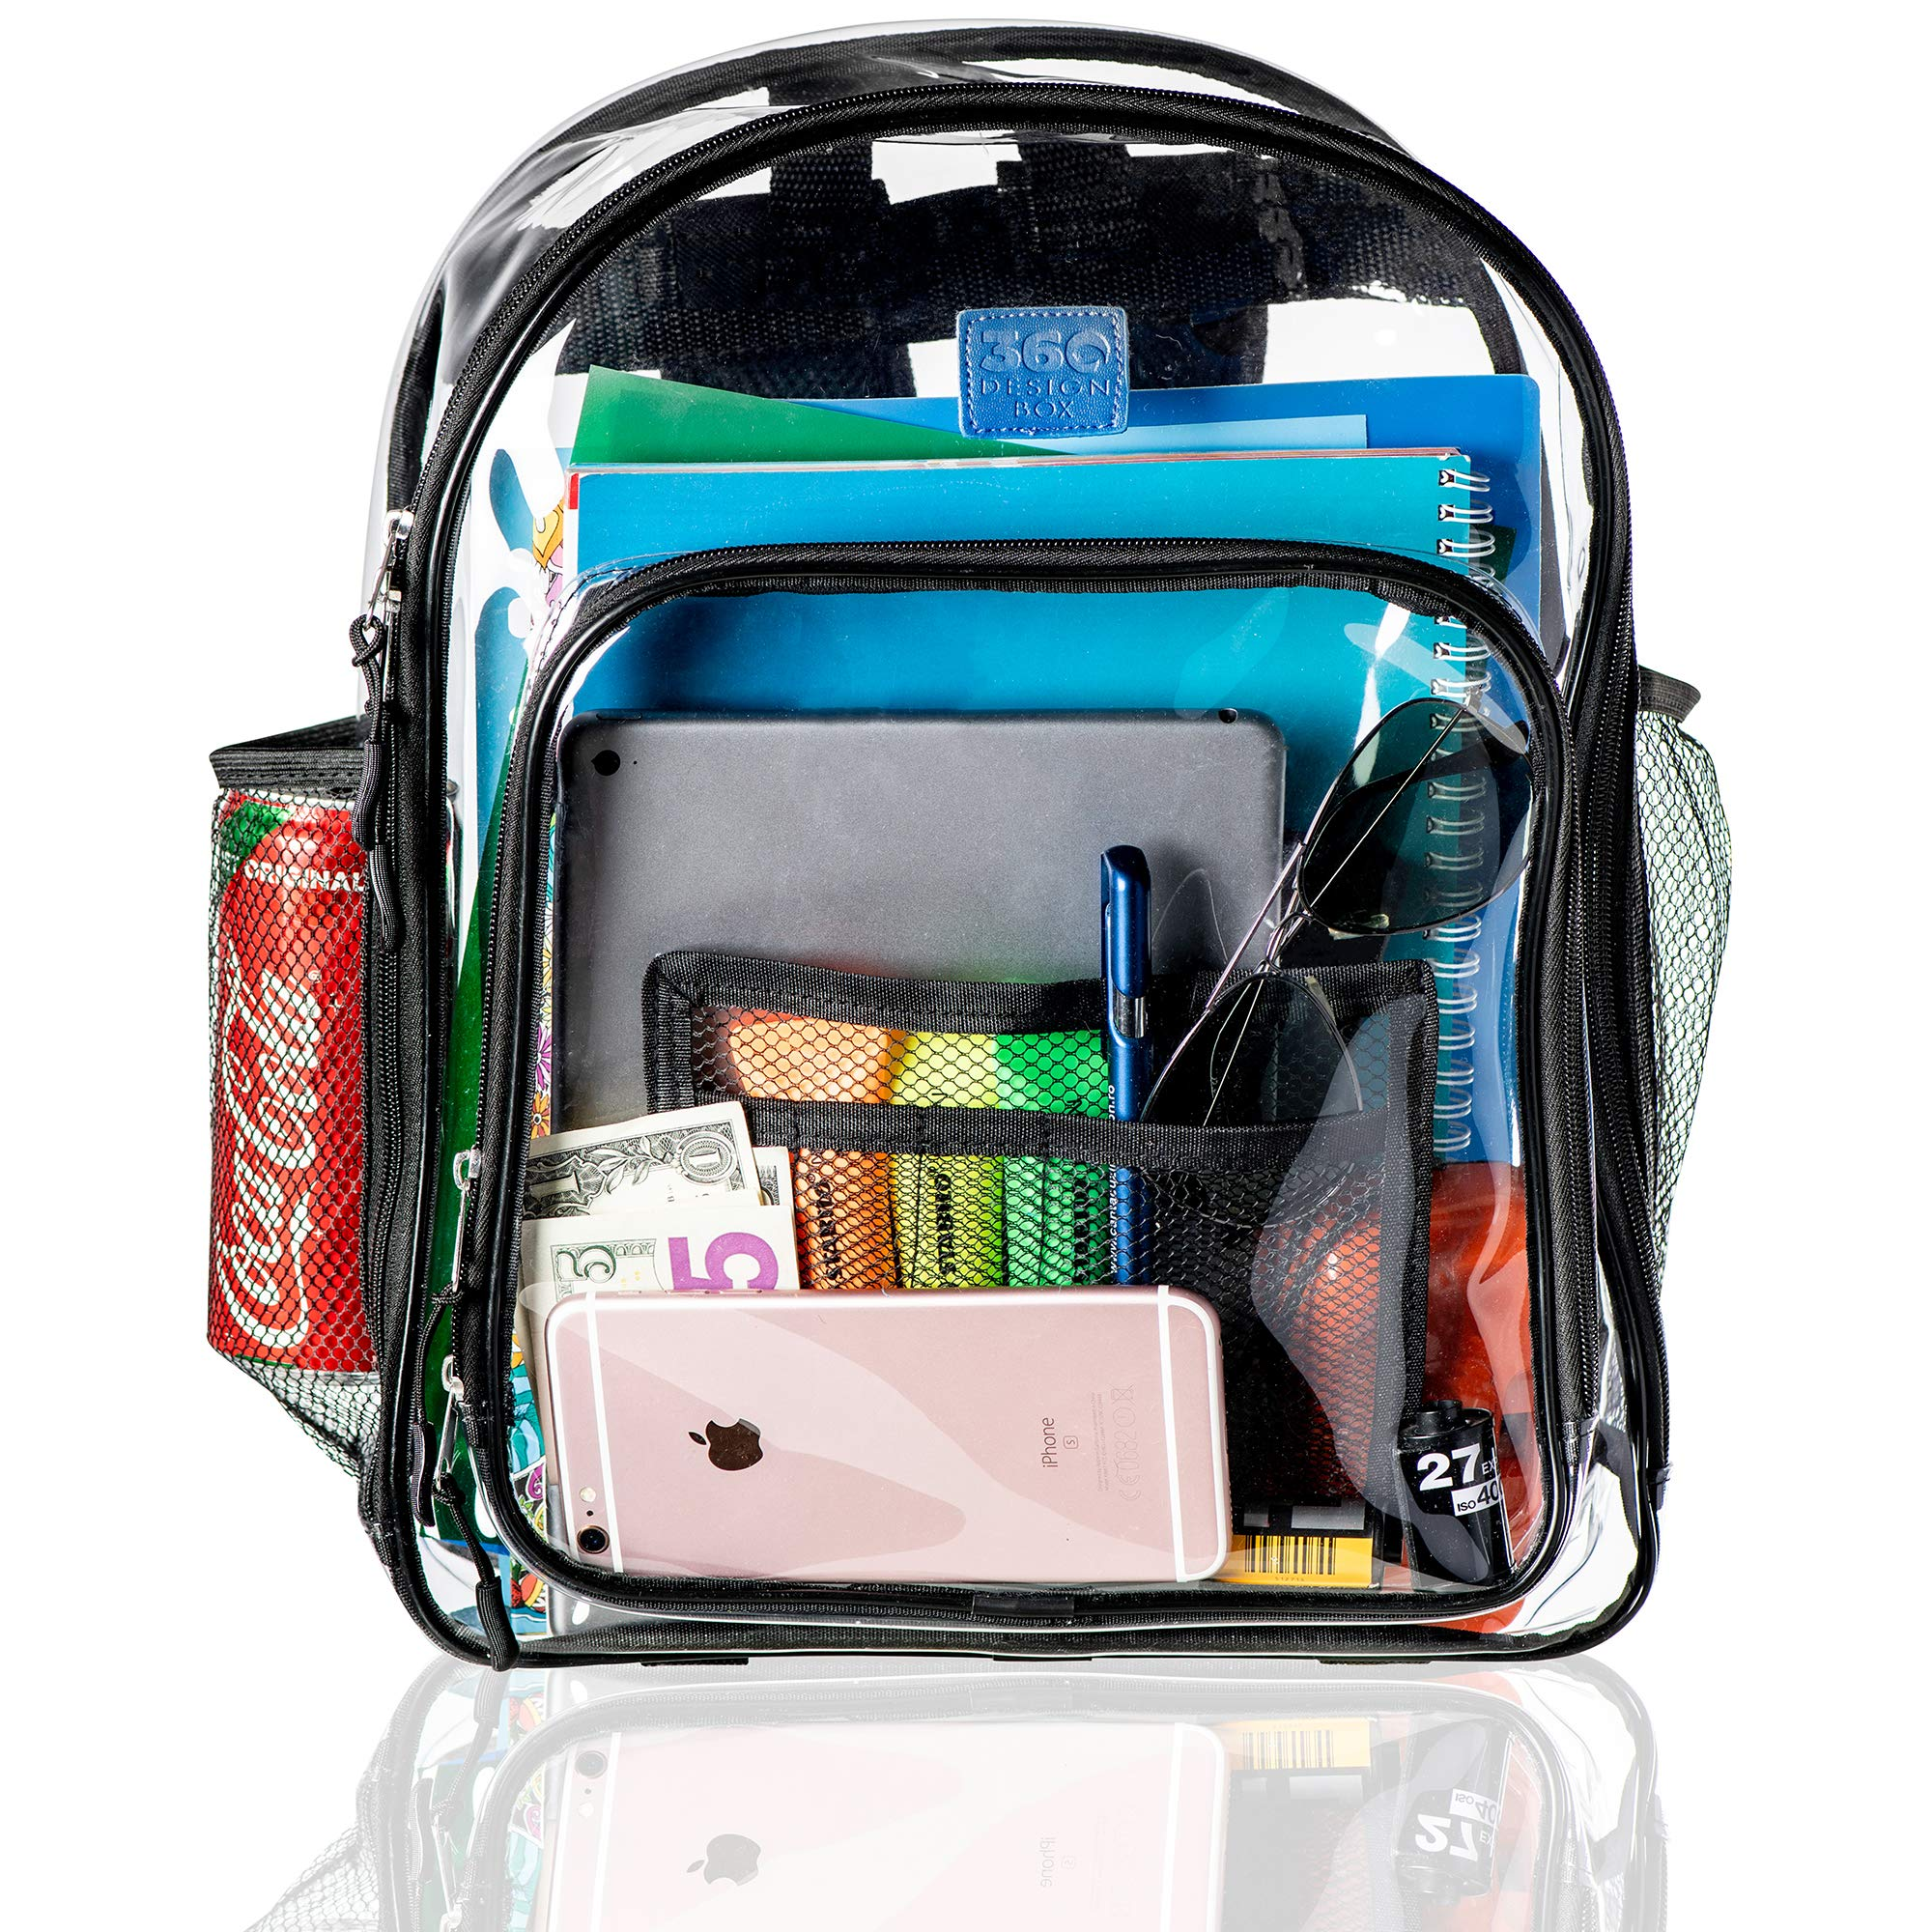 Clear Backpacks for School, Transparent Plastic Backpack for Travel, Clear Bag for Work with Pockets and Adjustable Padded Straps, See Through Bookbag and Matching Pencil Case - Black by 360 DESIGN BOX